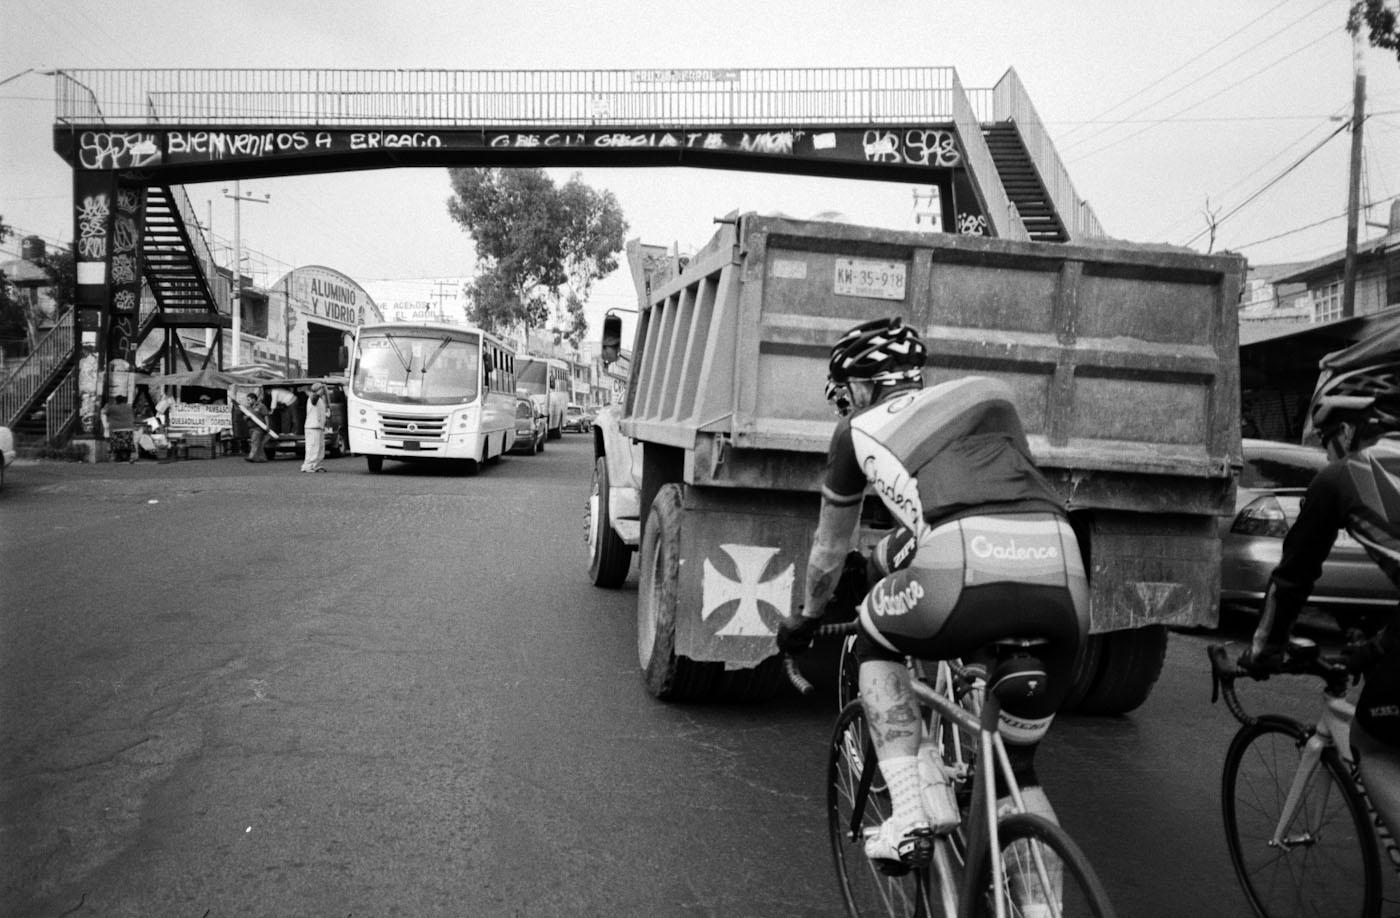 the first section of the Ajusco climb was heavily trafficked with trucks and buses in a low gear, barely making it up the steep incline